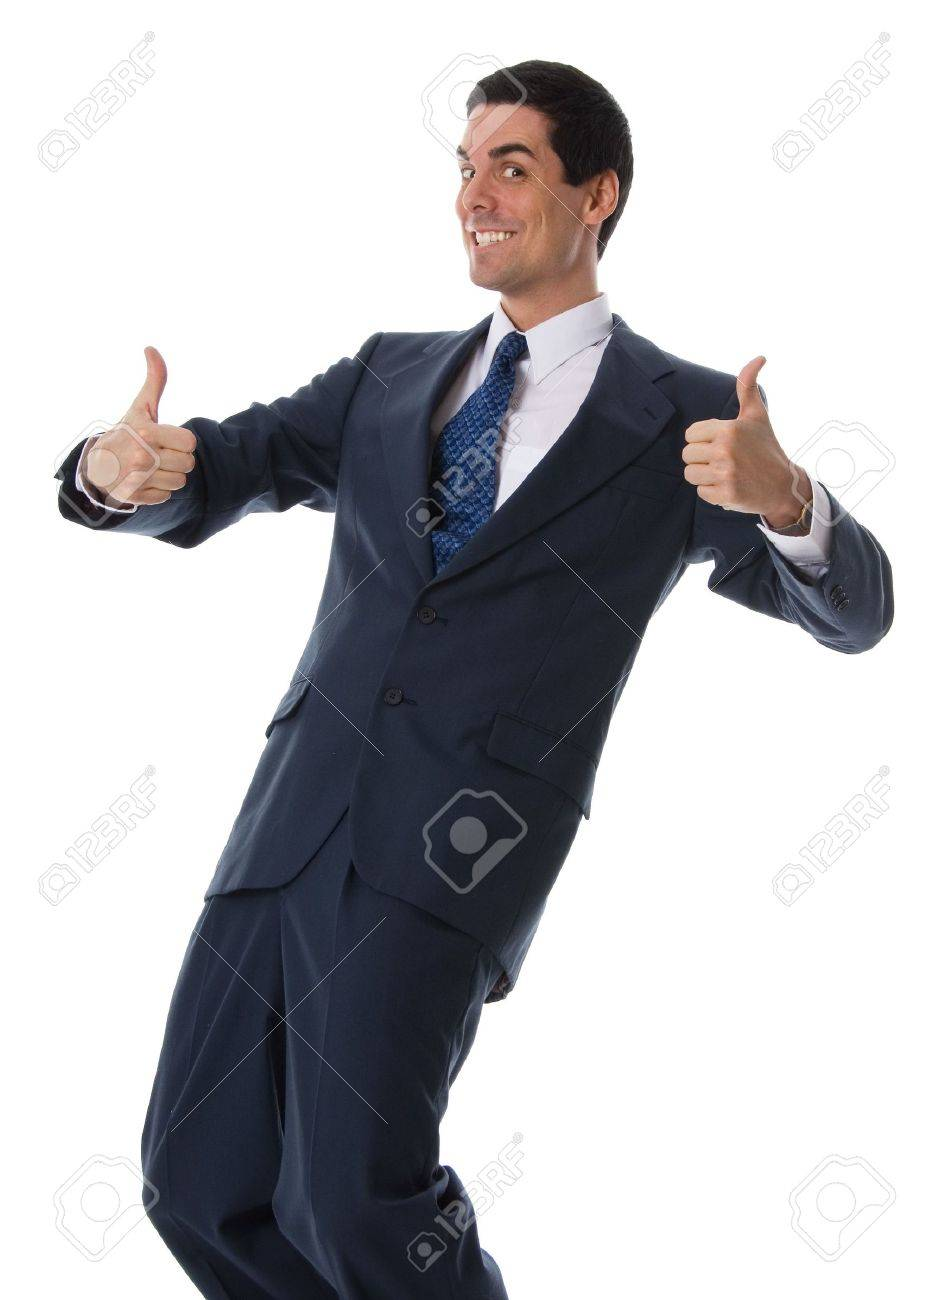 2 thumbs up man in a blue suit